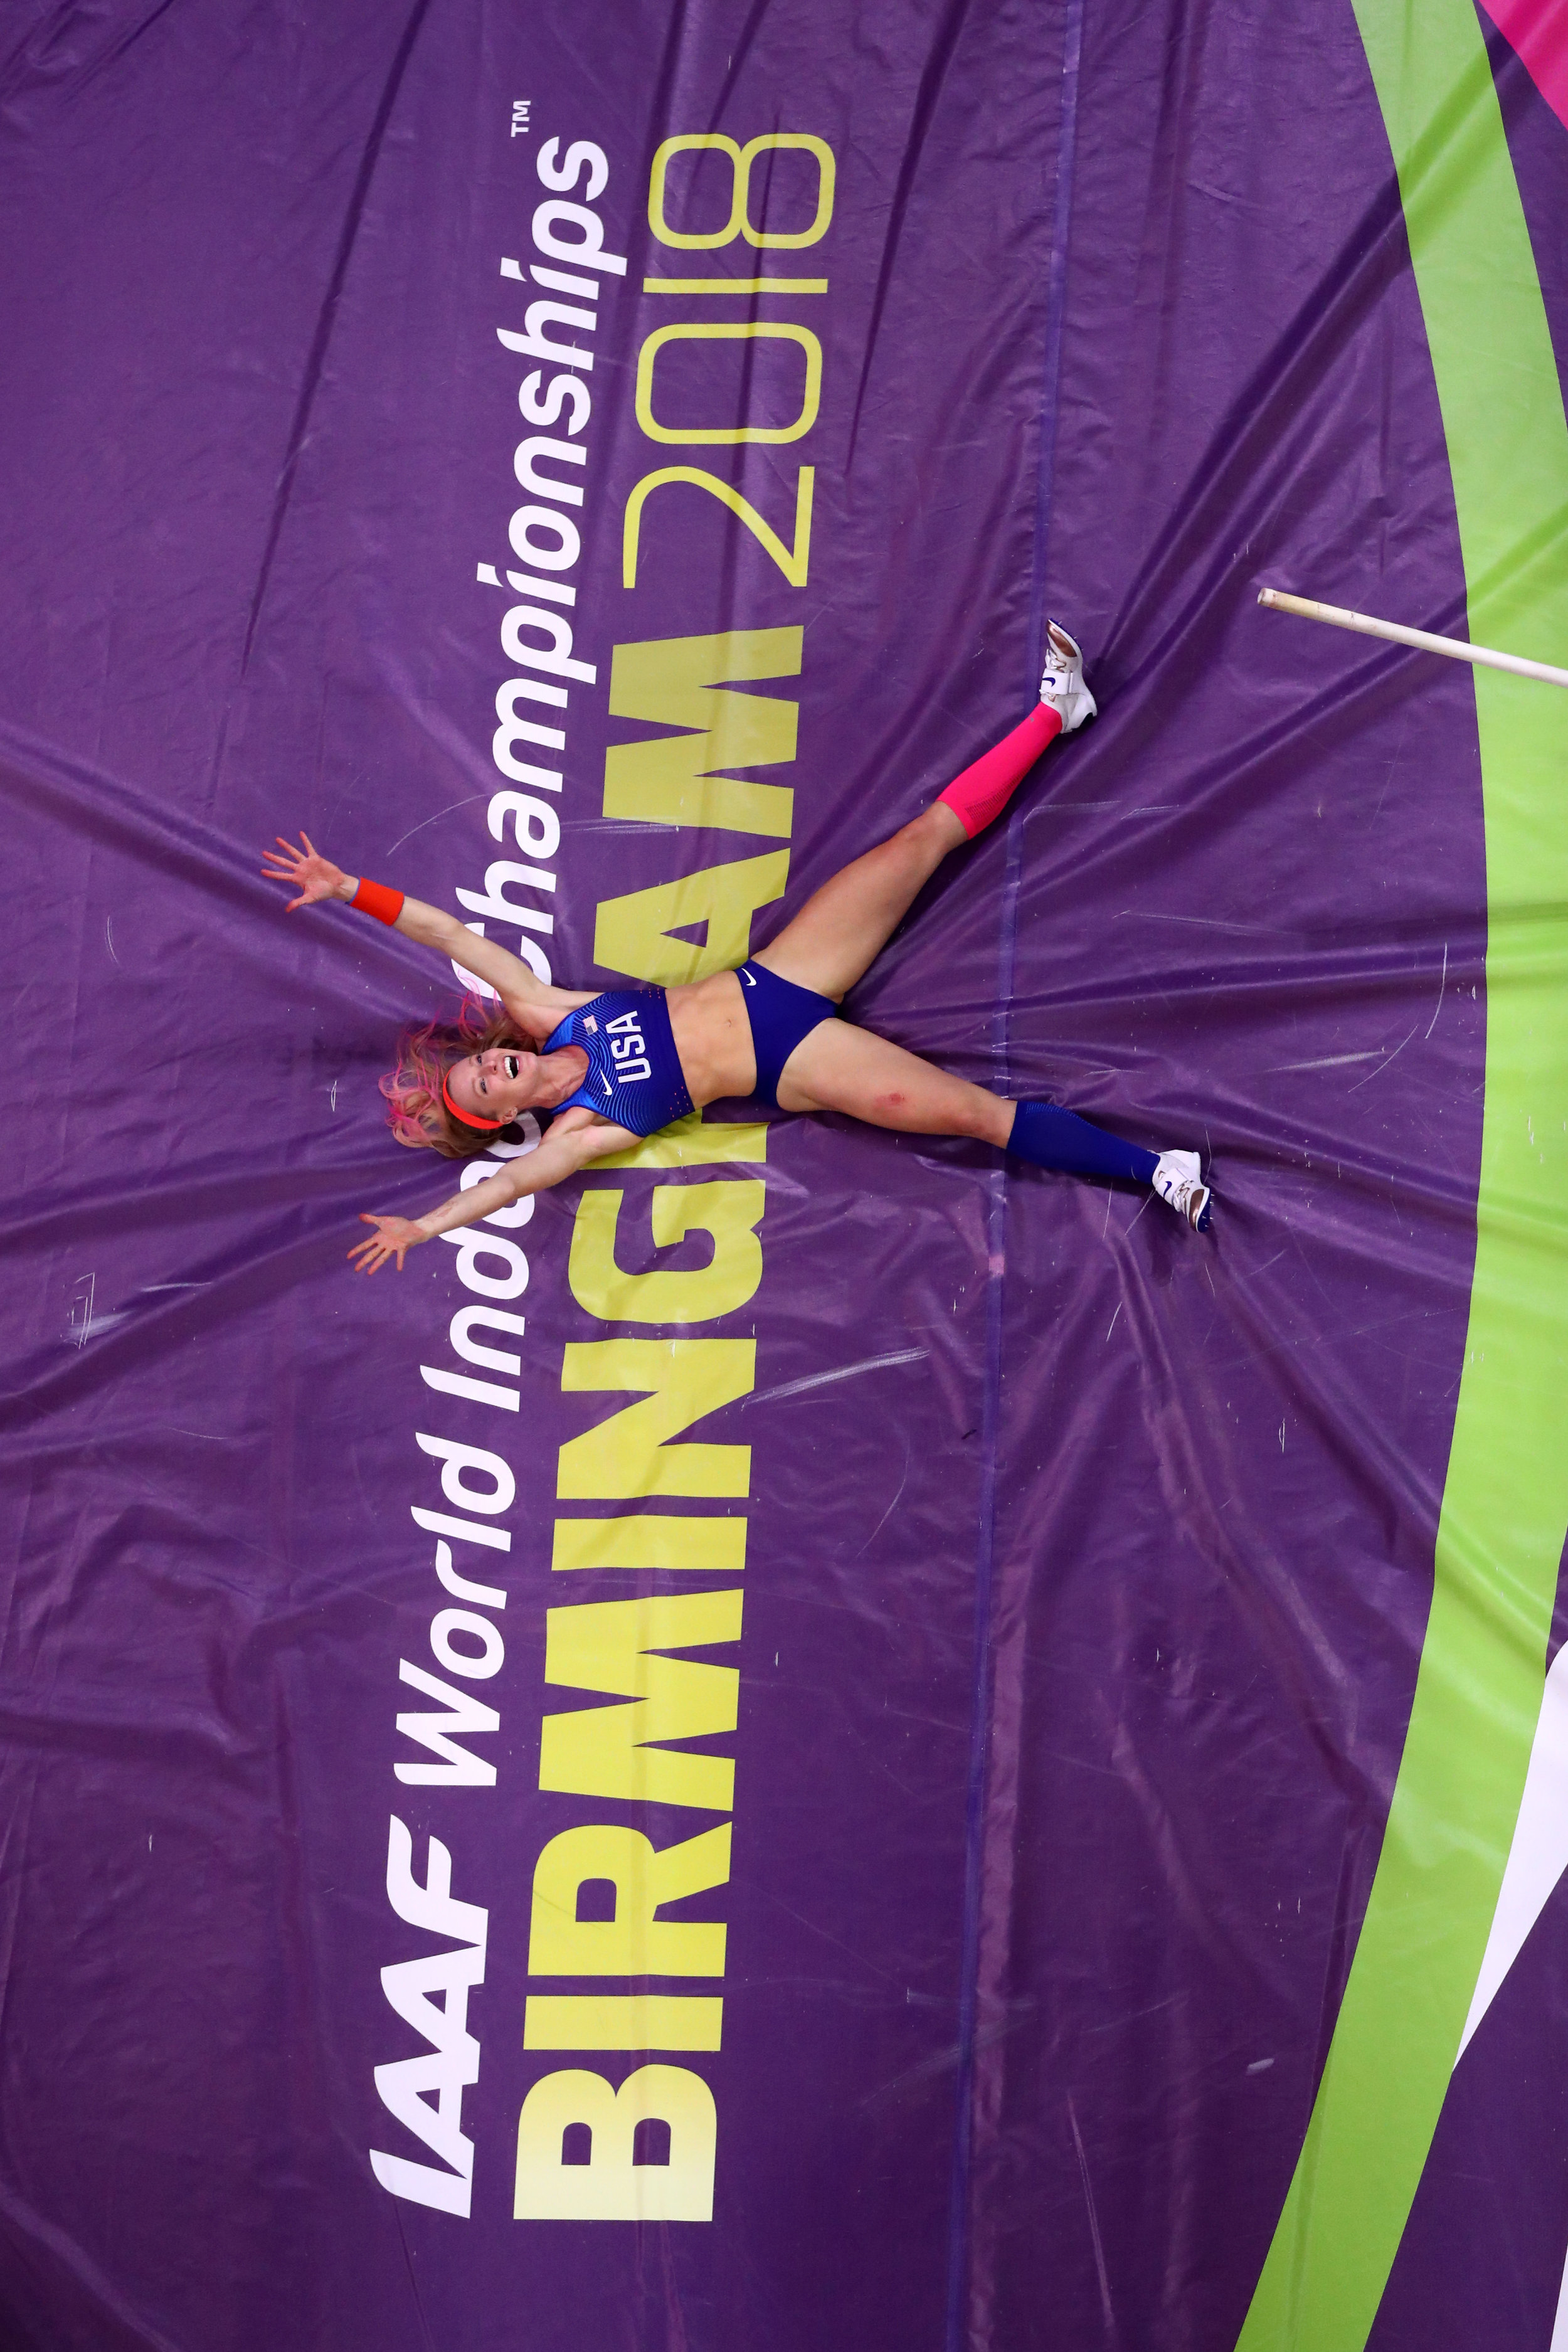 Sandi Morris celebrating a big clearance in the pole vault //Michael Steele/Getty Images for IAAF